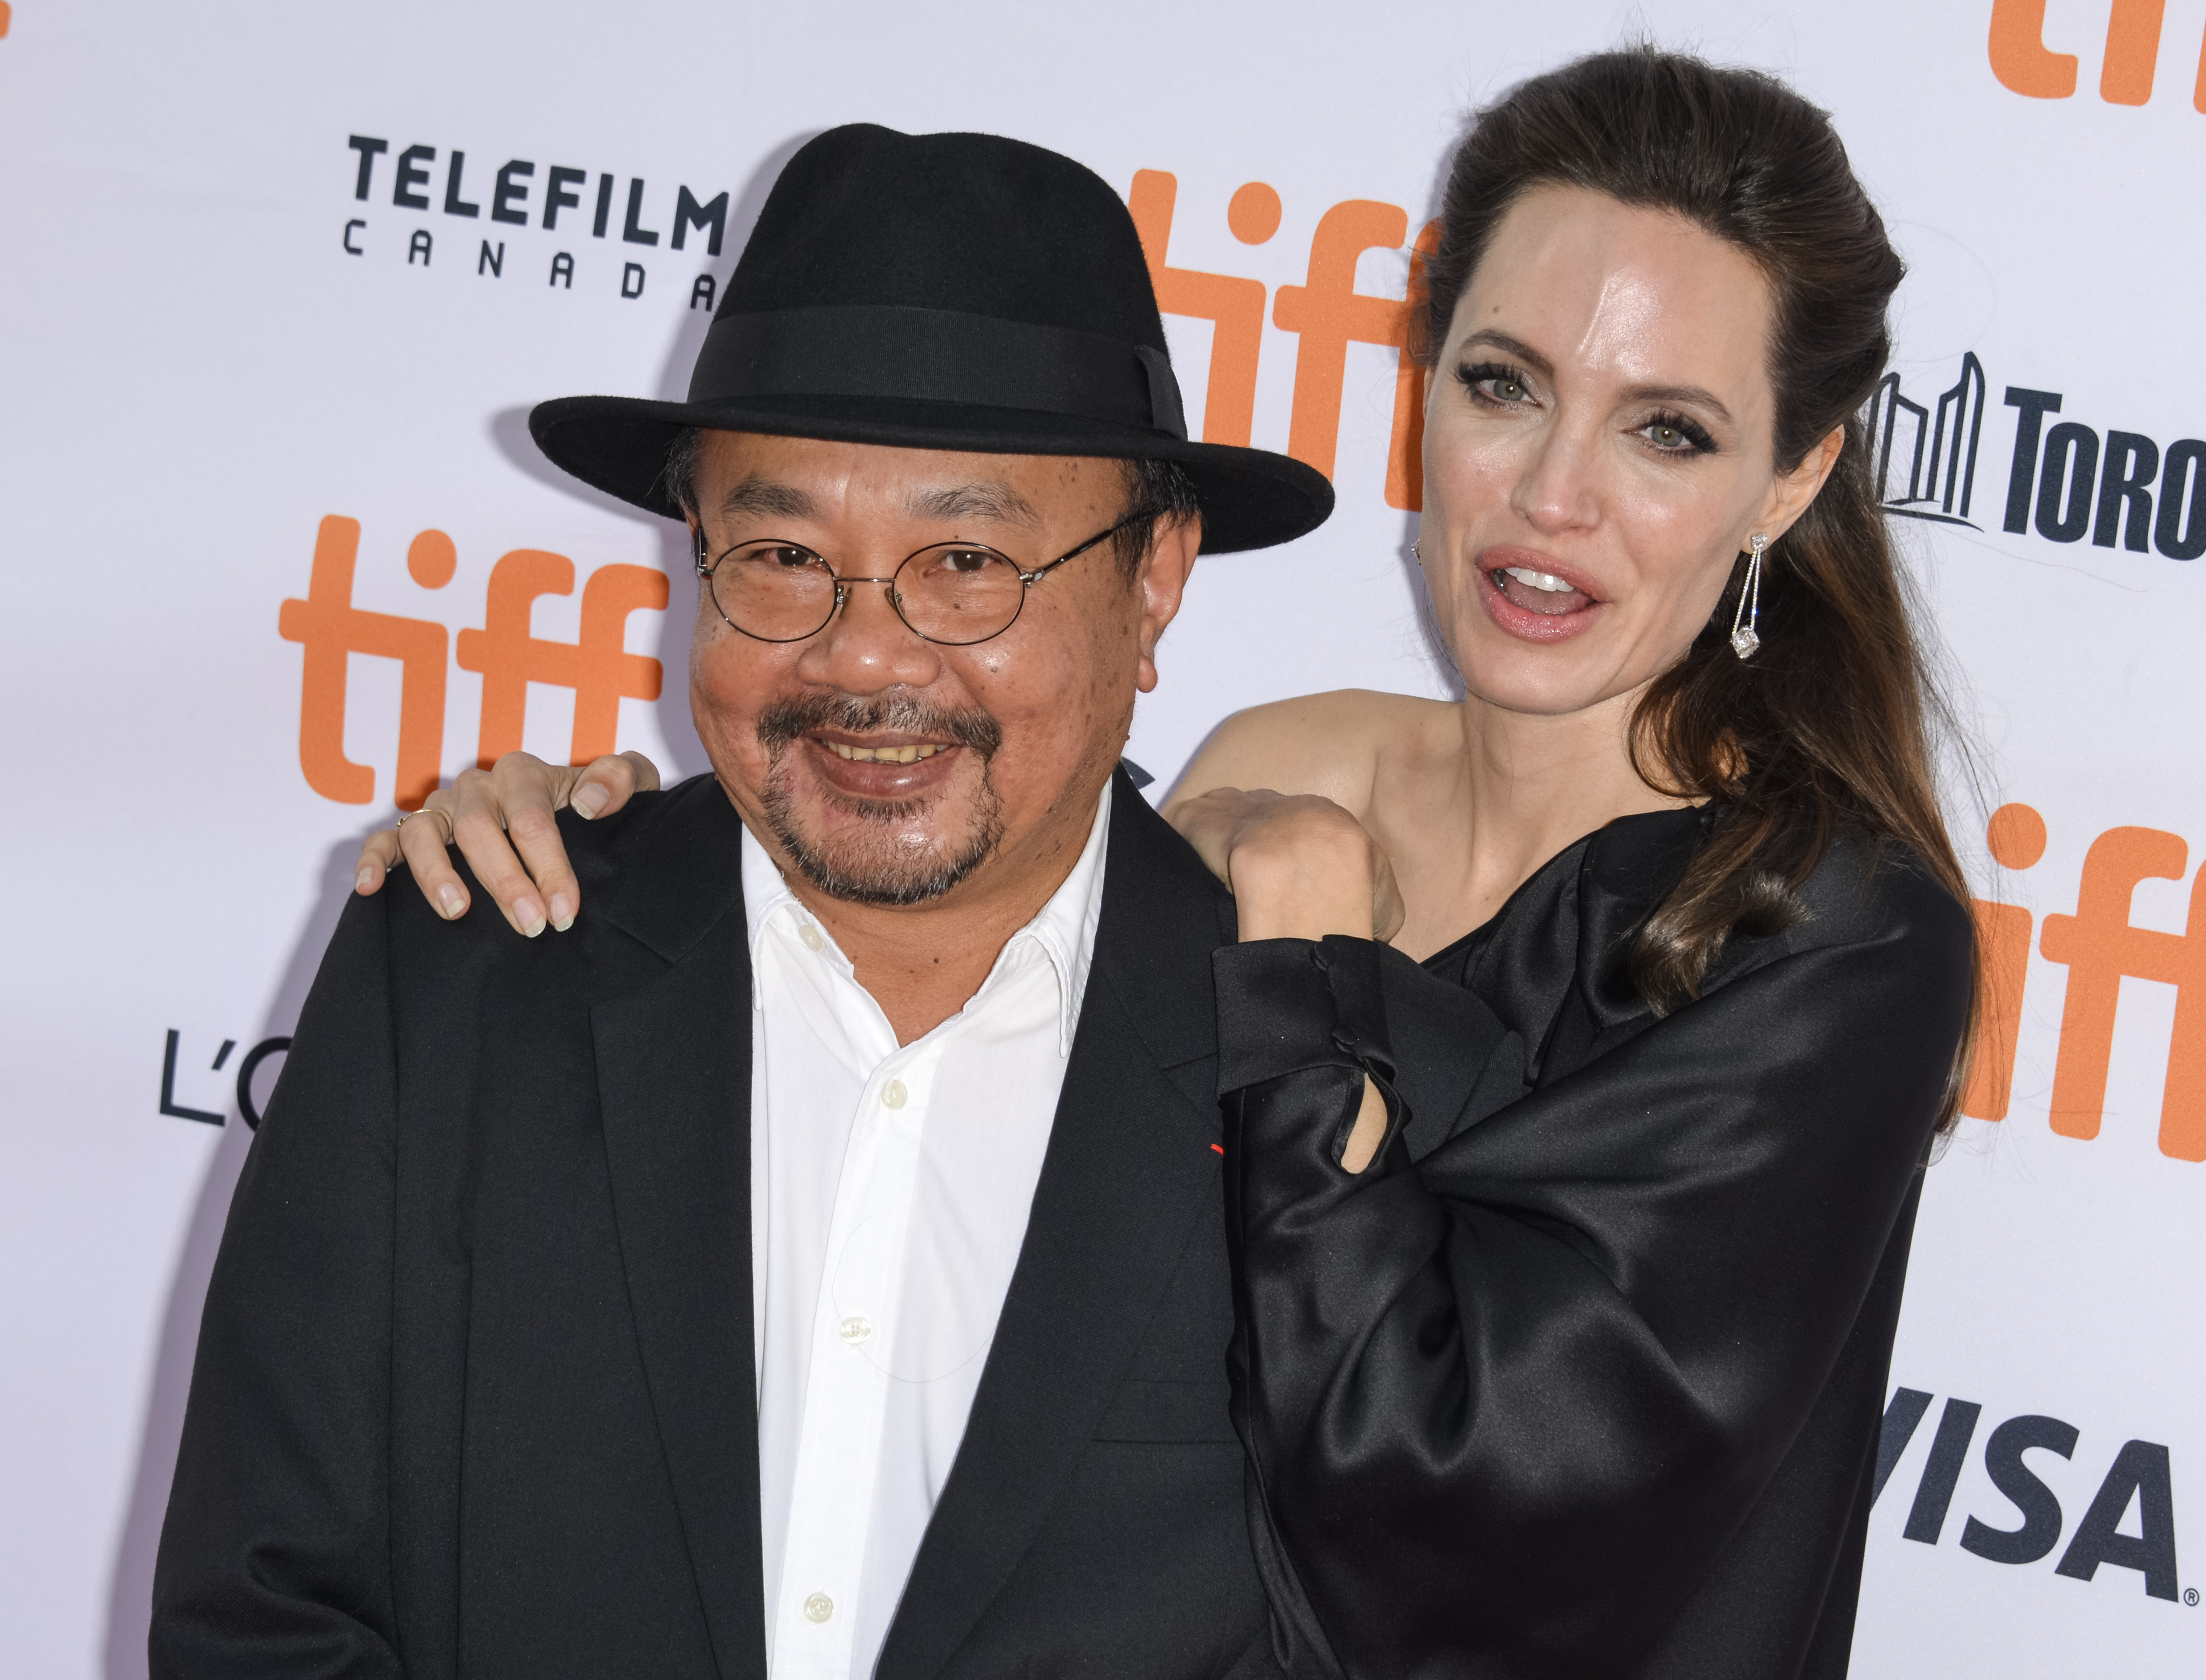 Angelina Jolie and Rithy PanhFirst They Killed My Father - Premiere - 42nd Toronto Film Festival, Canada - 11 Sep 2017 Cambodian producer Rithy Panh (L) and US director Angelina Jolie arrive for the screening of the movie 'First They Killed My Father' during the 42nd annual Toronto International Film Festival (TIFF) in Toronto, Canada, 11 September 2017. The festival runs until 17 September.